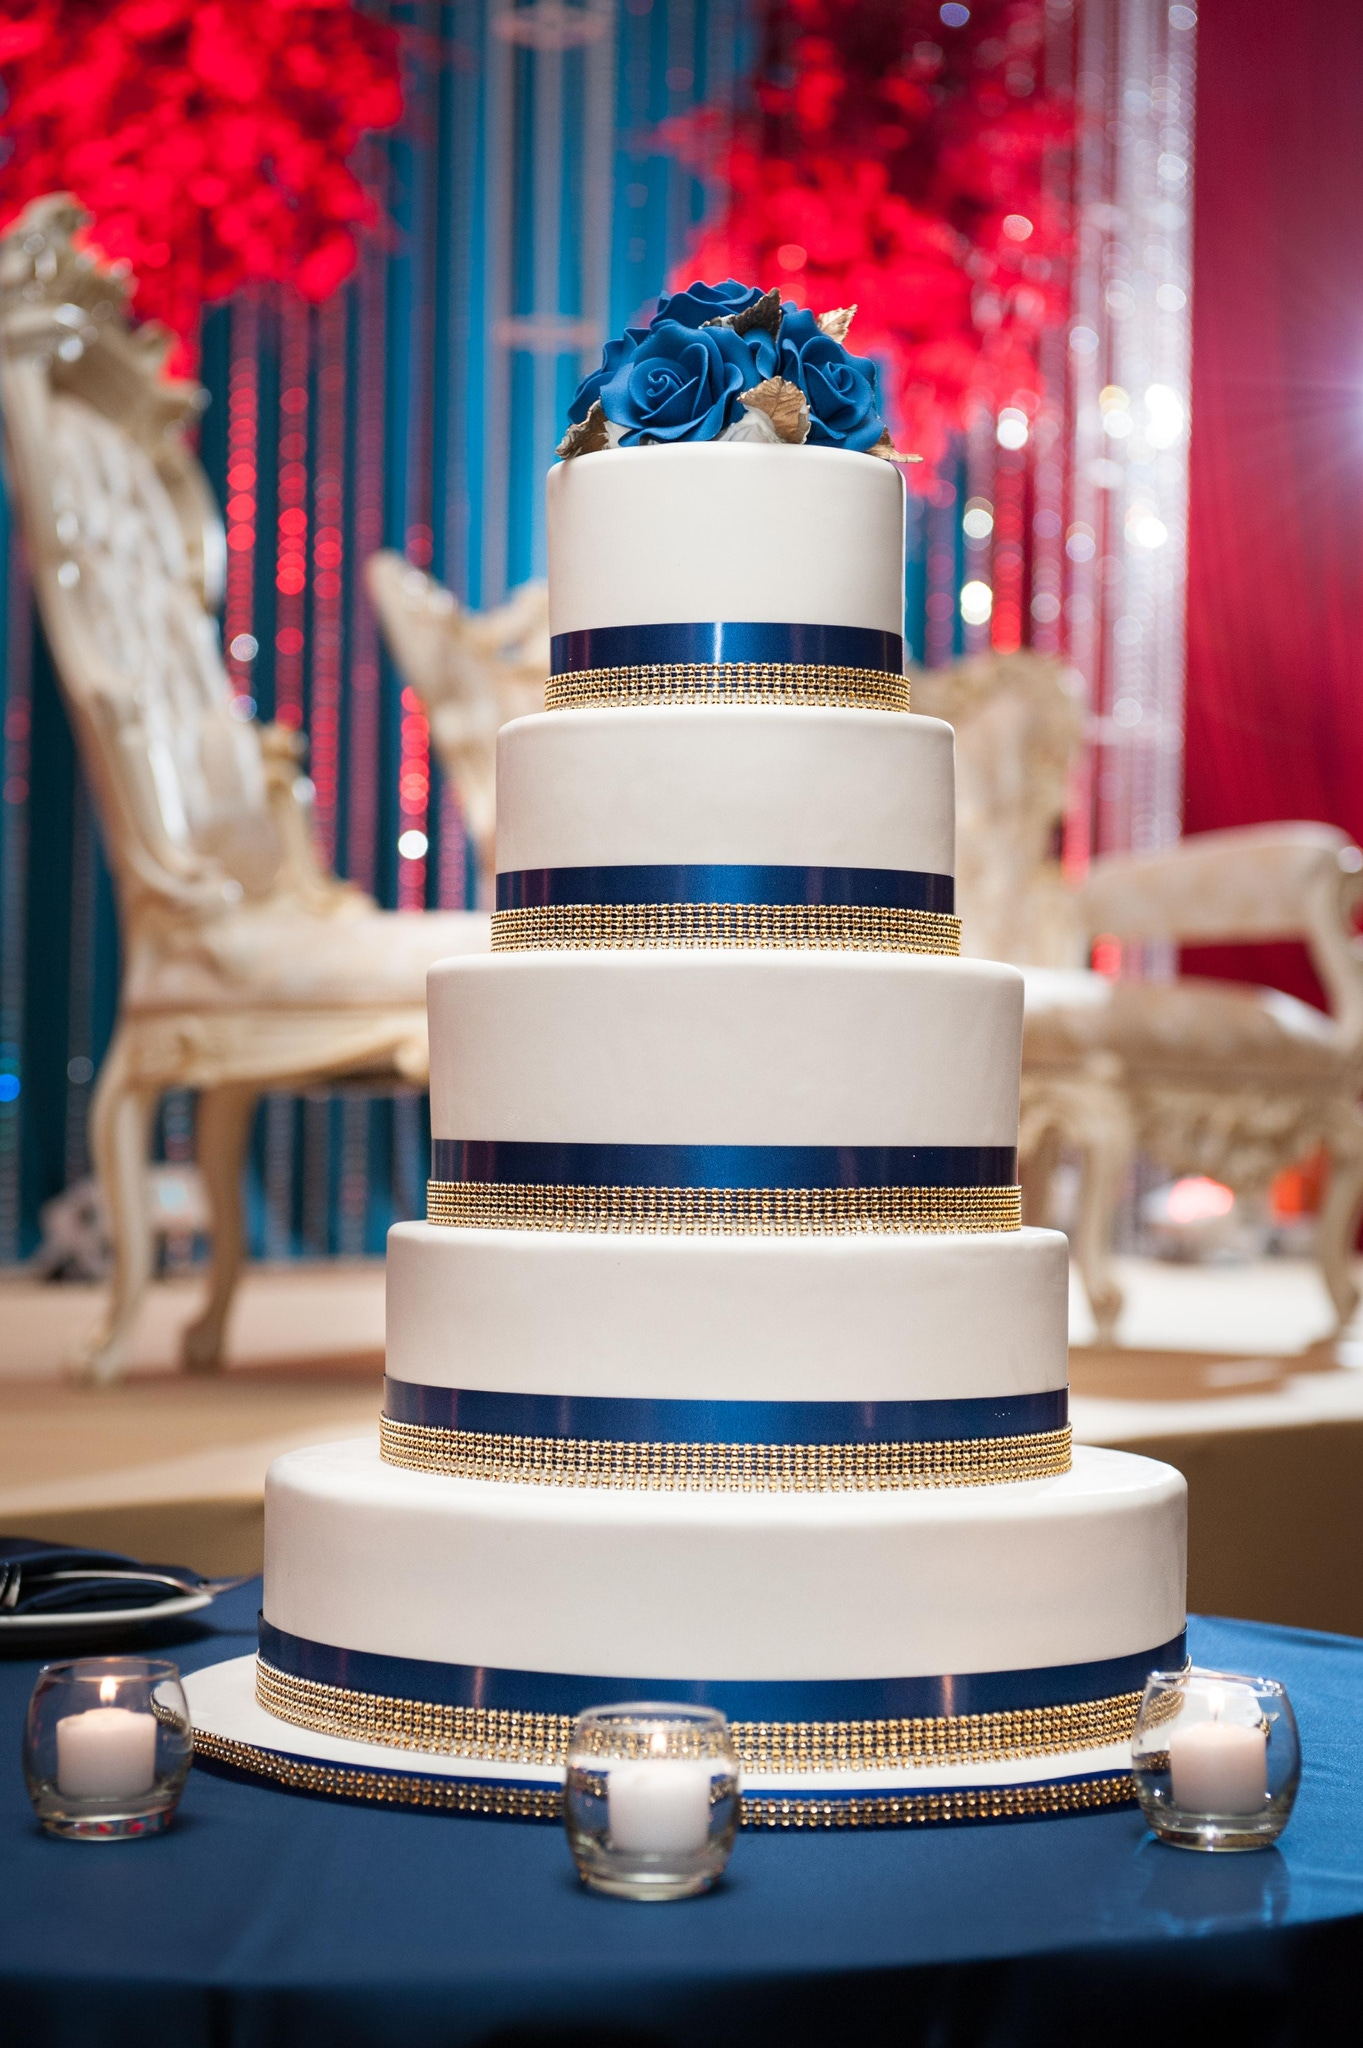 Red, white and blue wedding cake